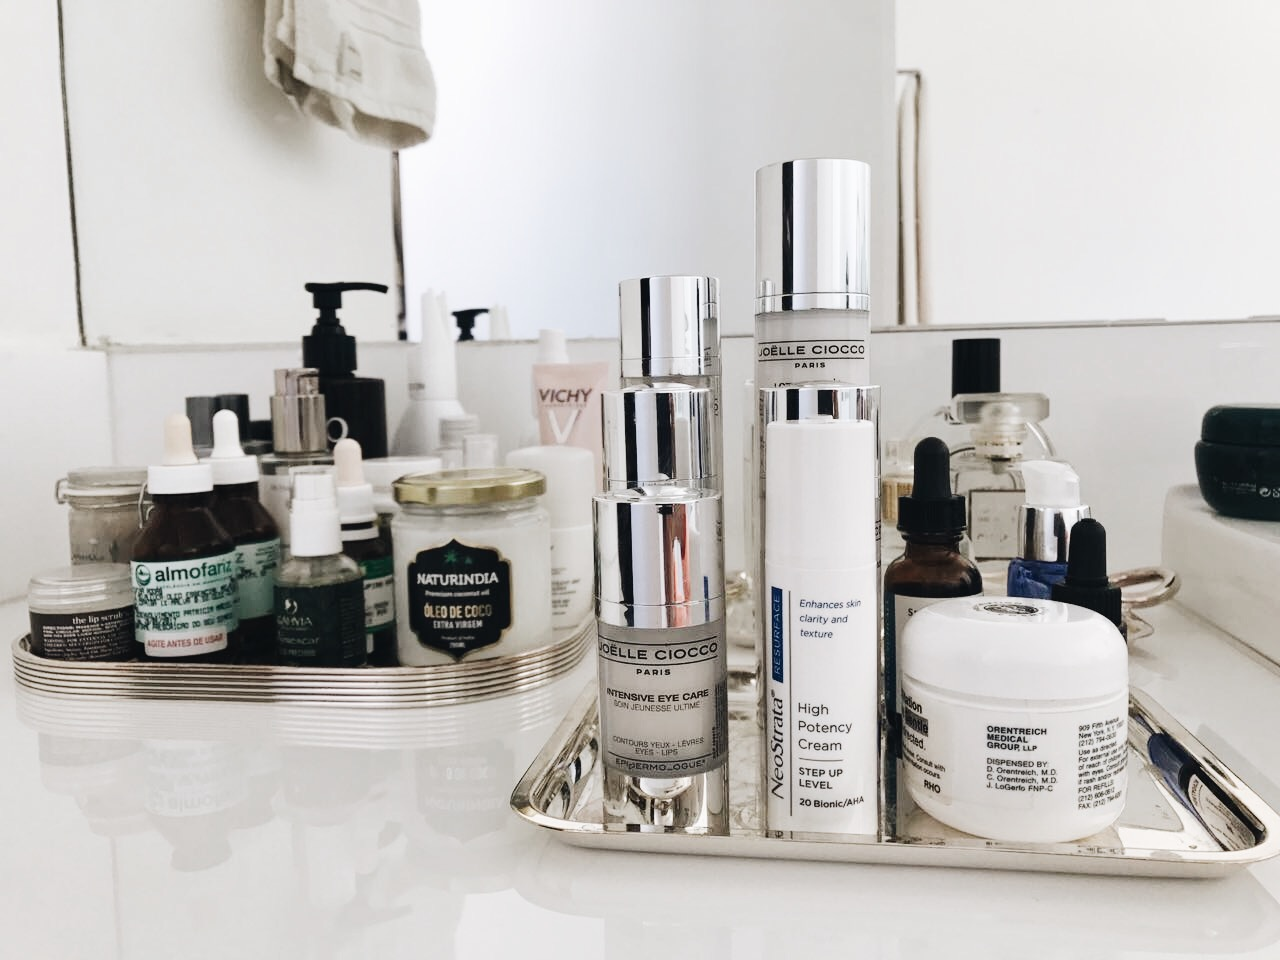 IMG 0754 - Top Shelf: A Beauty Routine da Helena Sicupira